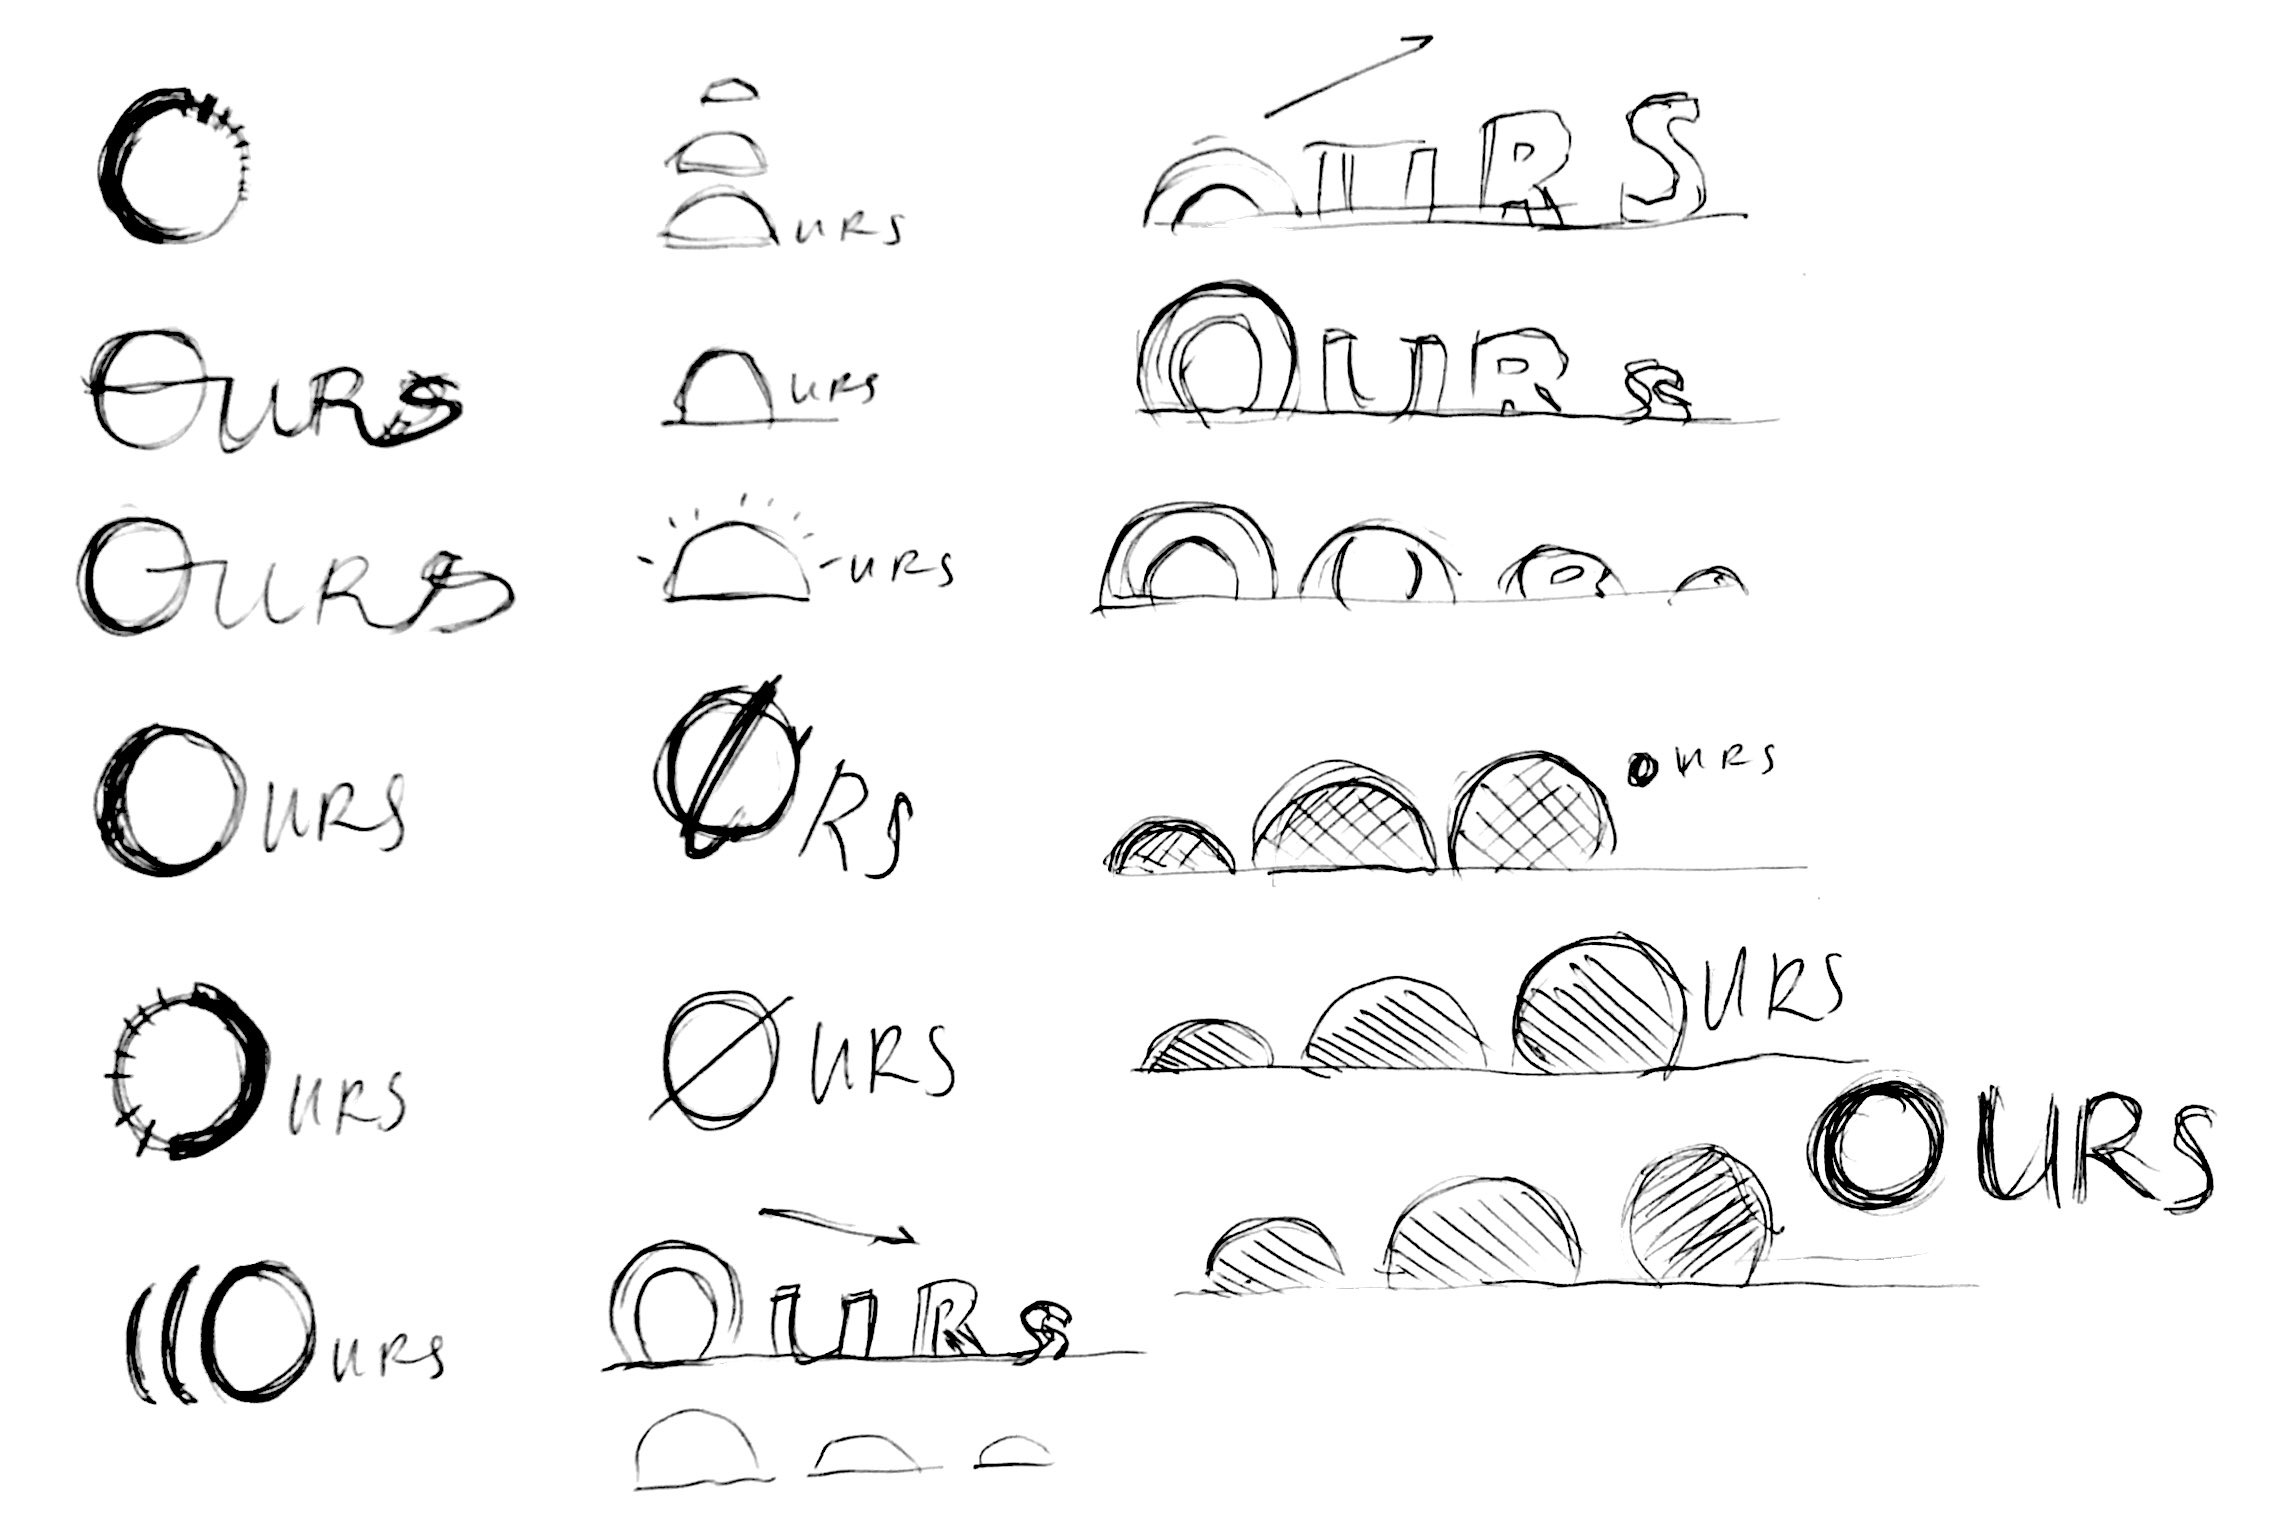 The branding process started out with choosing a name that would encompass the sense of being in control of life and not taking time for granted. I thought 'Ours' would be great since it also referred to 'hours'. I wanted to create a logotype that encompasses the characteristics of the rising sun and explored that treatment of rising eclipses onto each letter as well.